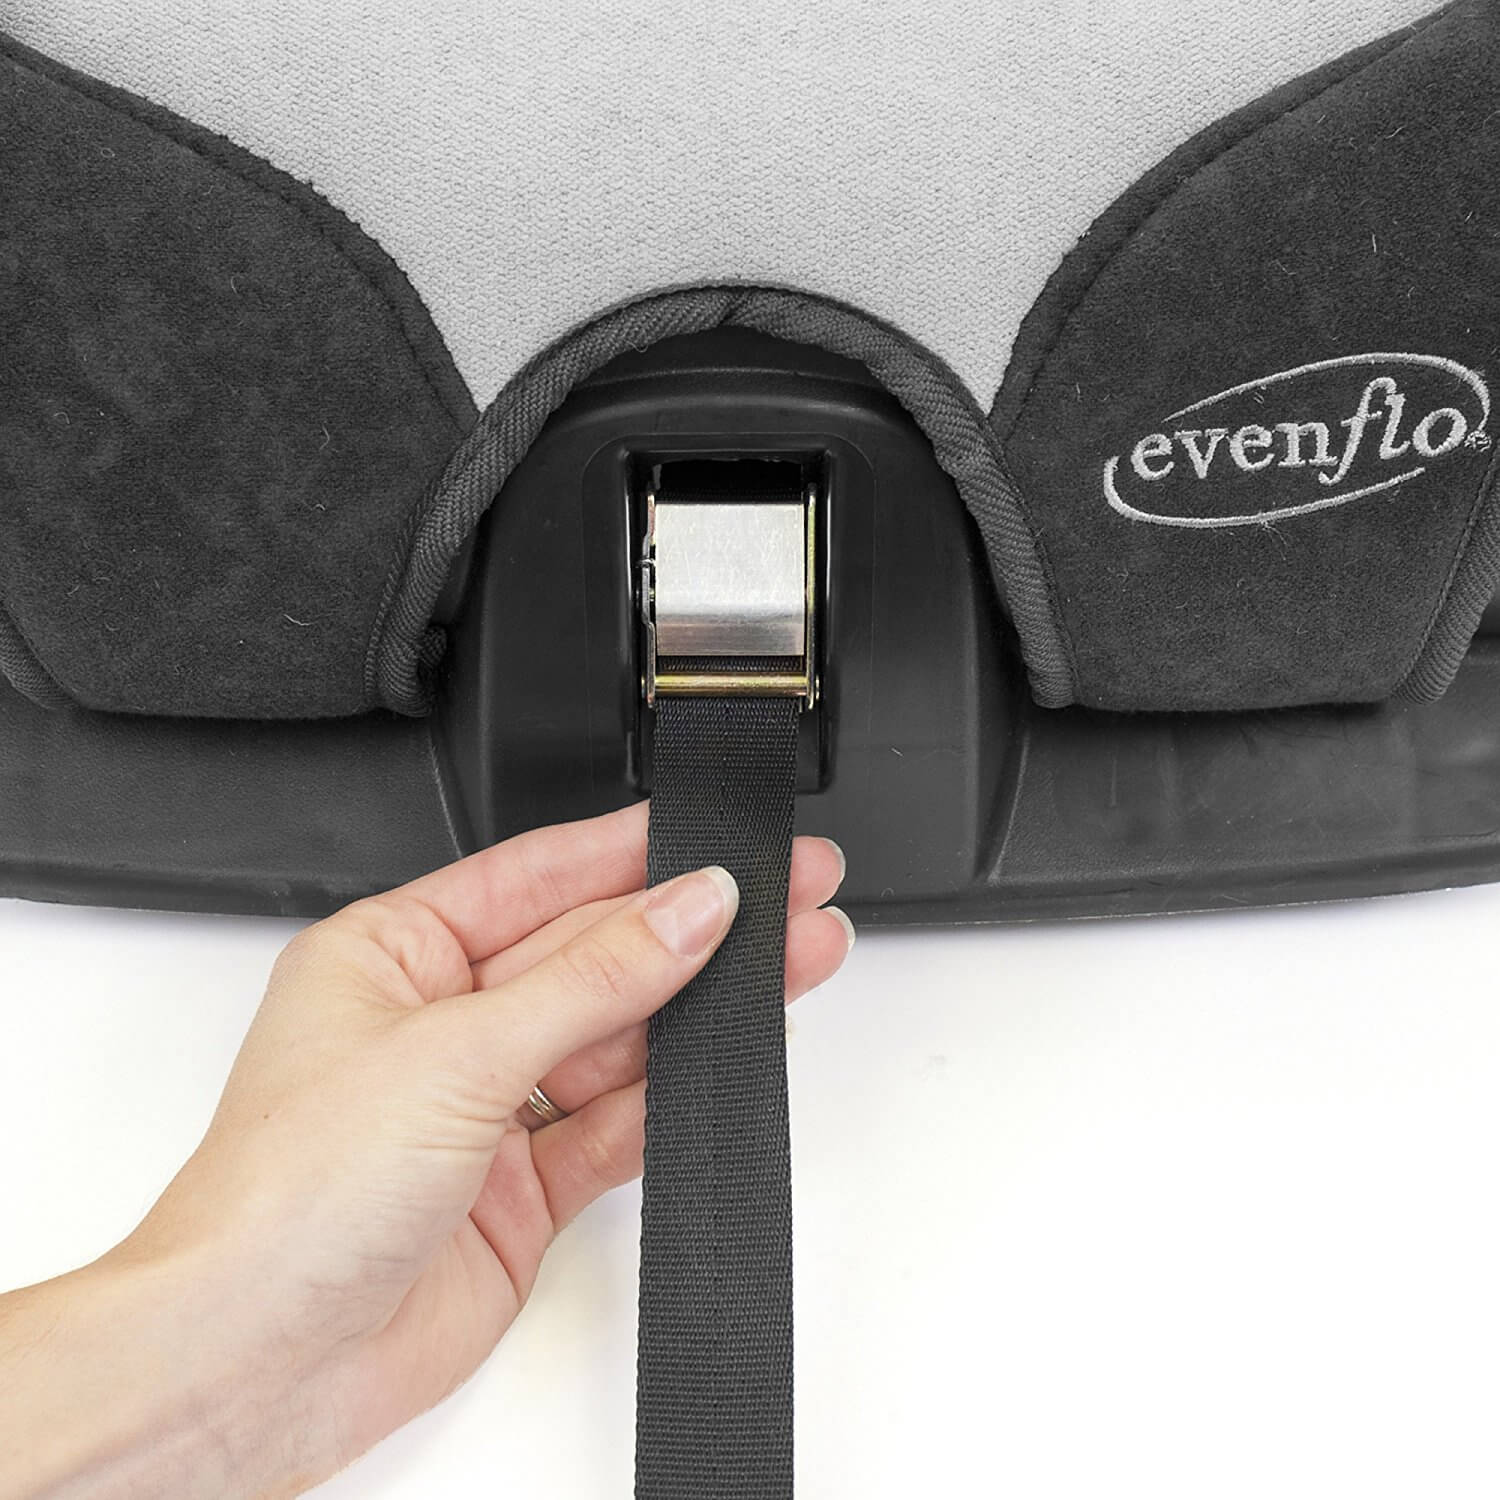 Evenflo Tribute LX Car Seat: One of the Best Car Seats in 2017